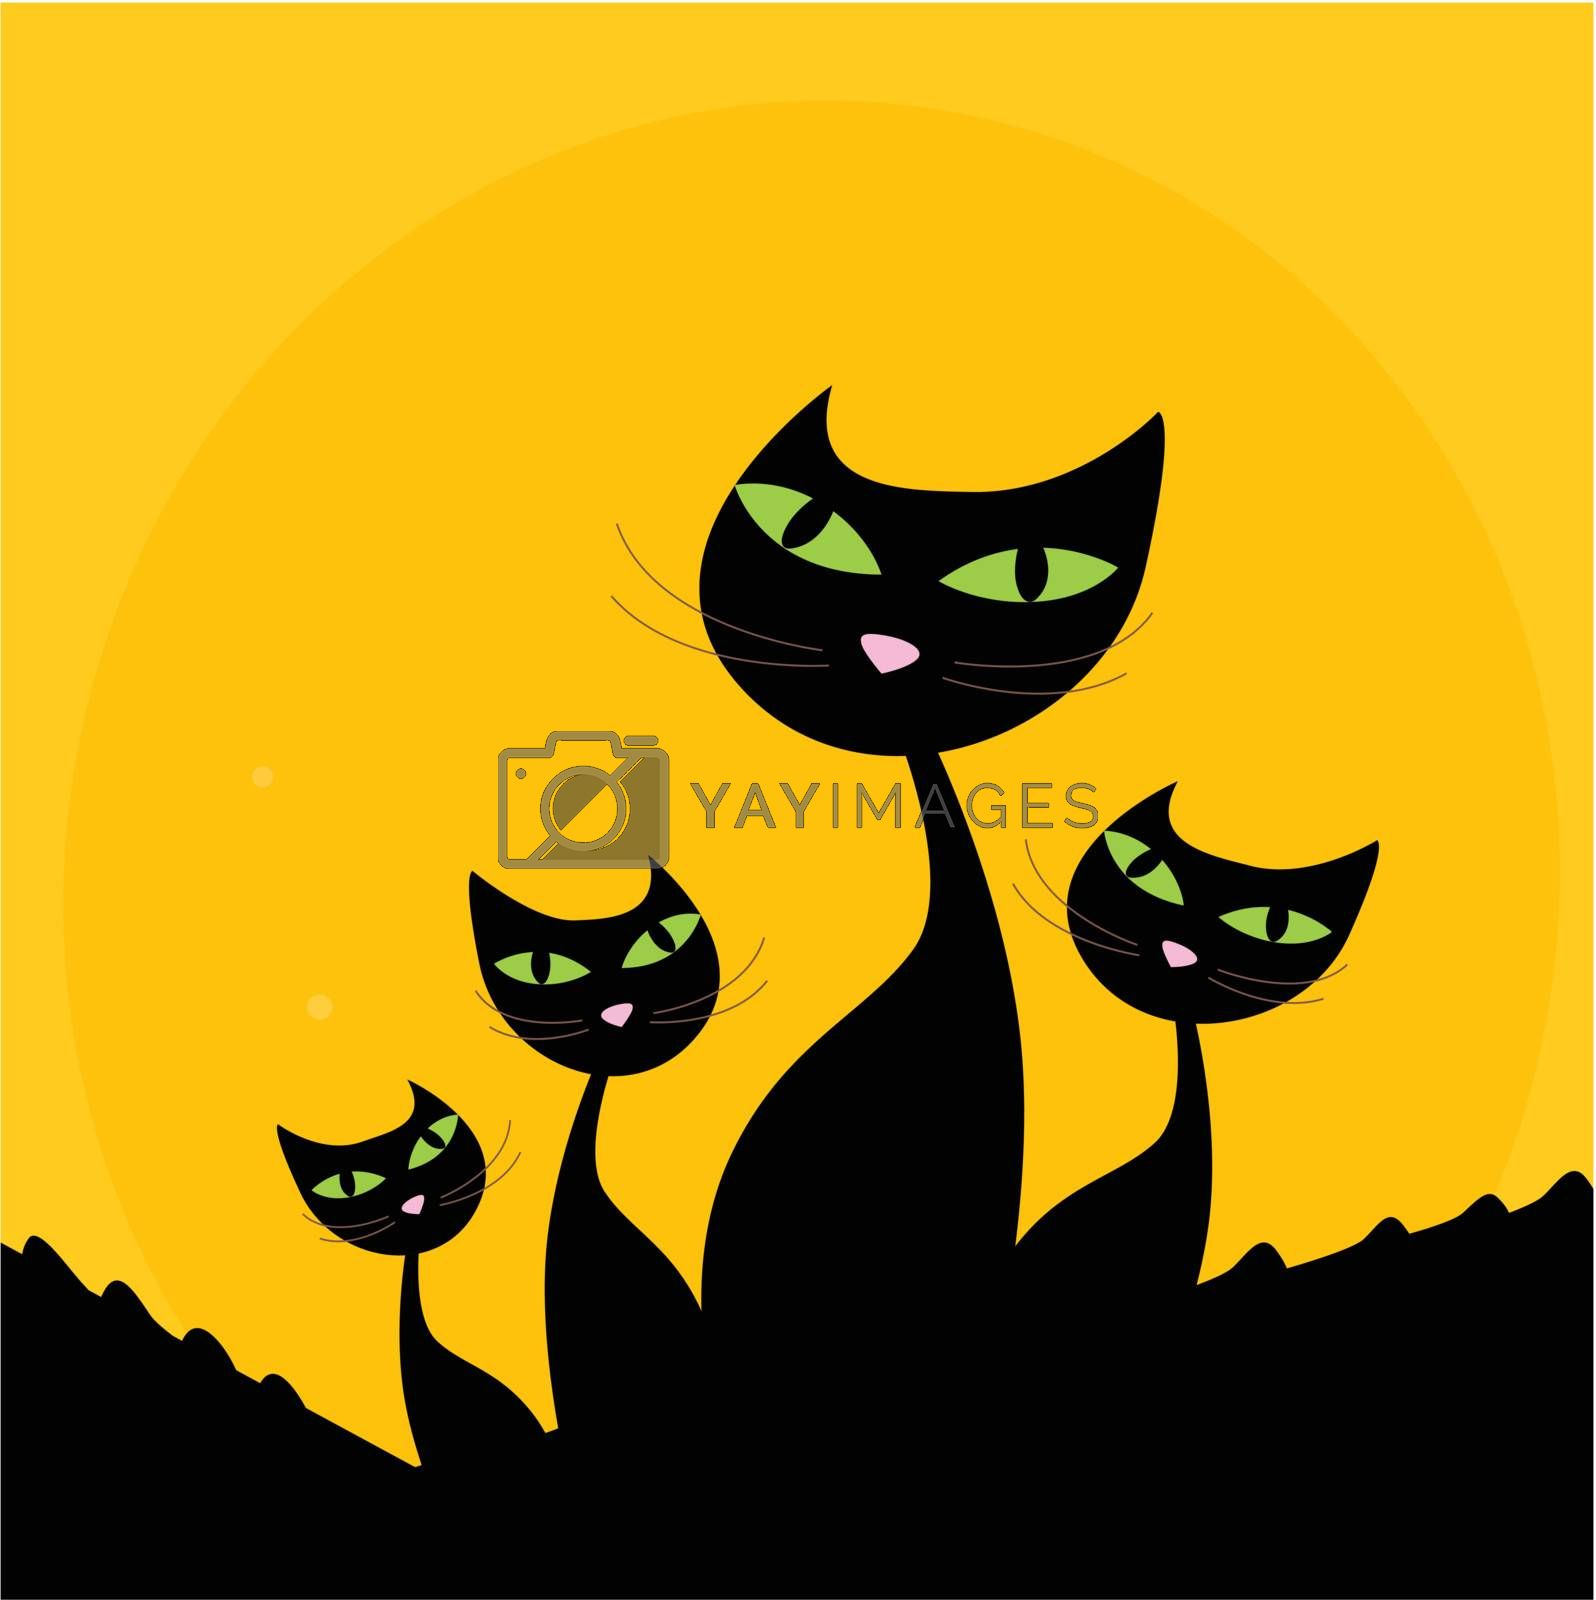 Cat Family Black Silhouette On Orange Background Royalty Free Stock Image Stock Photos Royalty Free Images Vectors Footage Yayimages